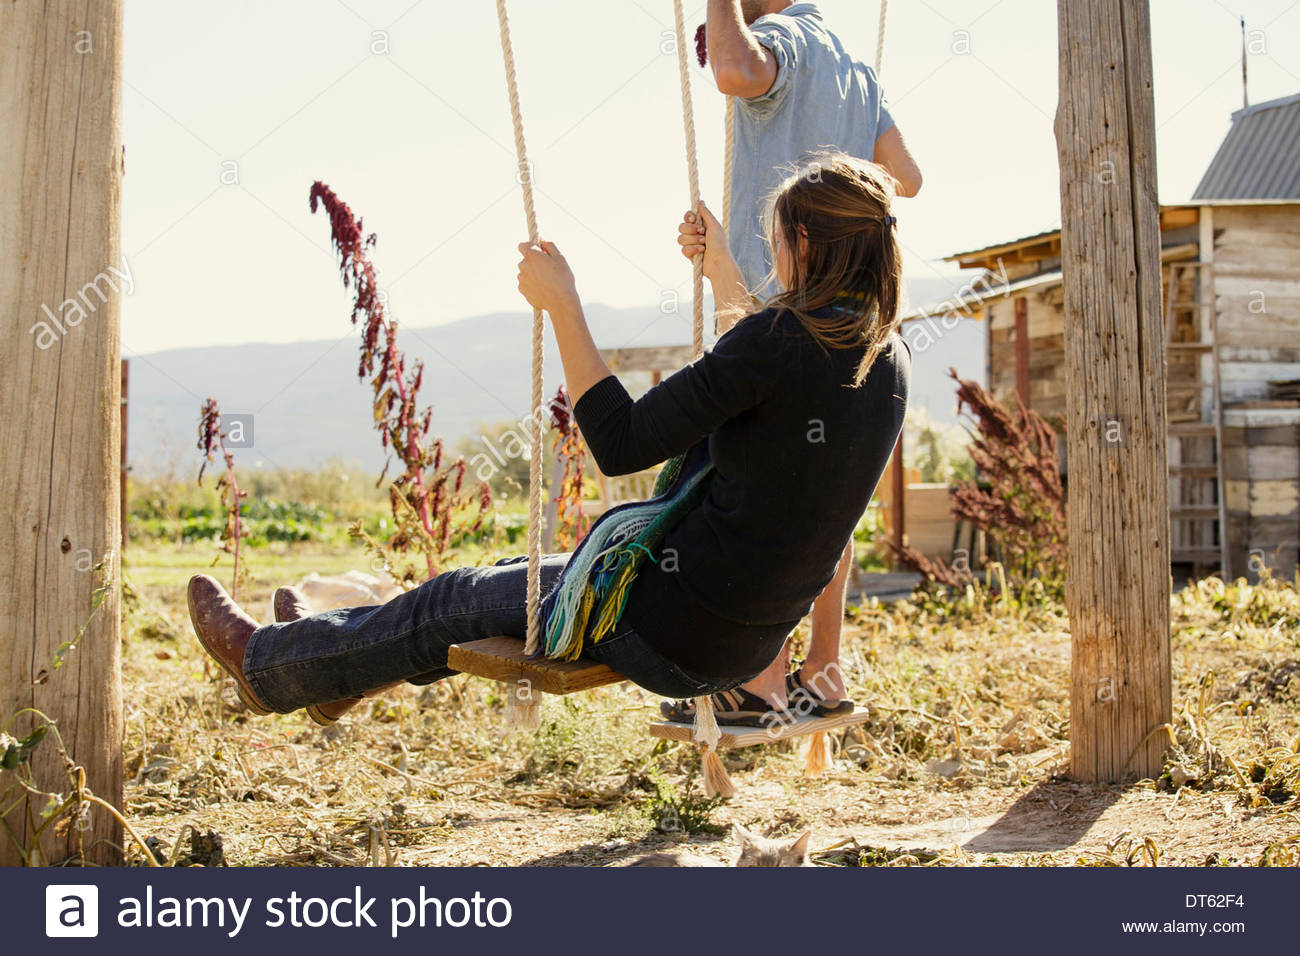 Young woman on swing - Stock Image